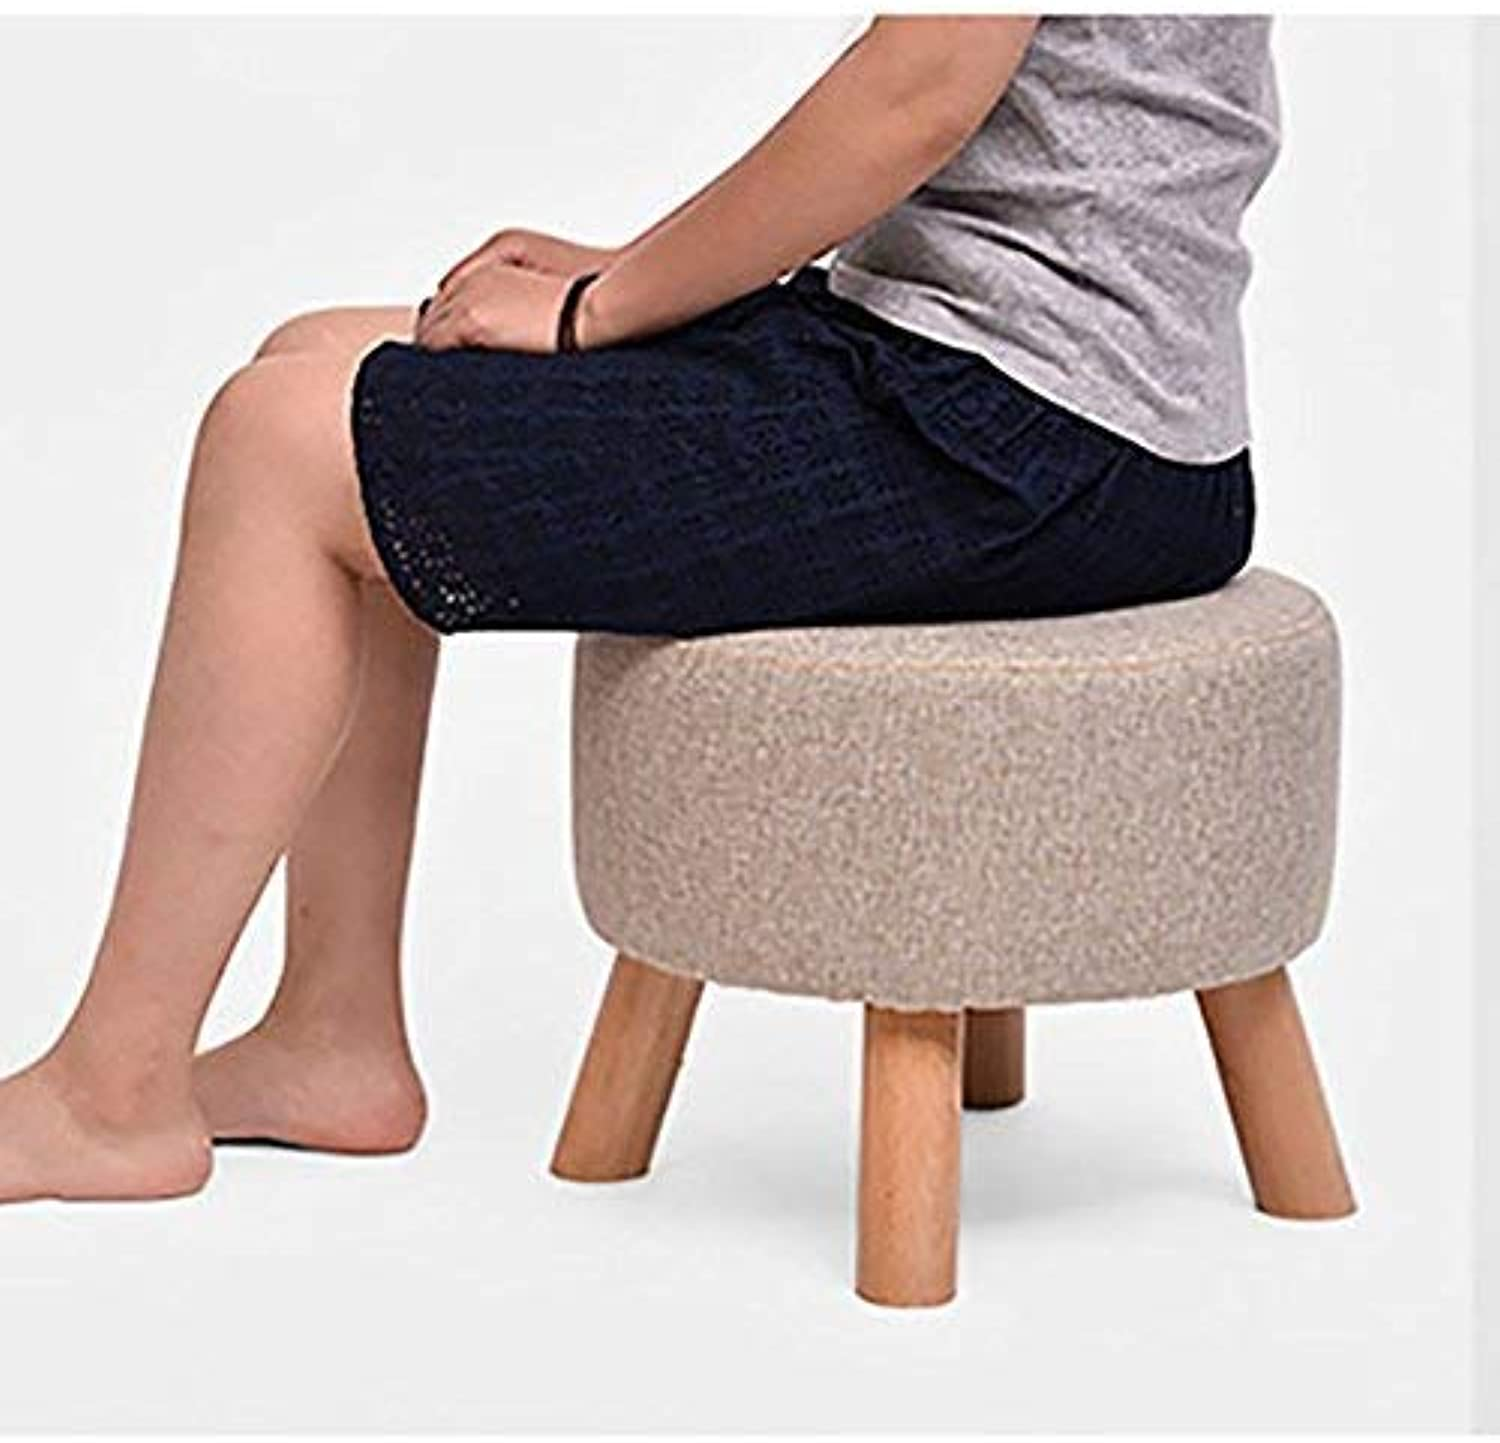 JZX Solid Wood Fabric shoes Bench, Footstool